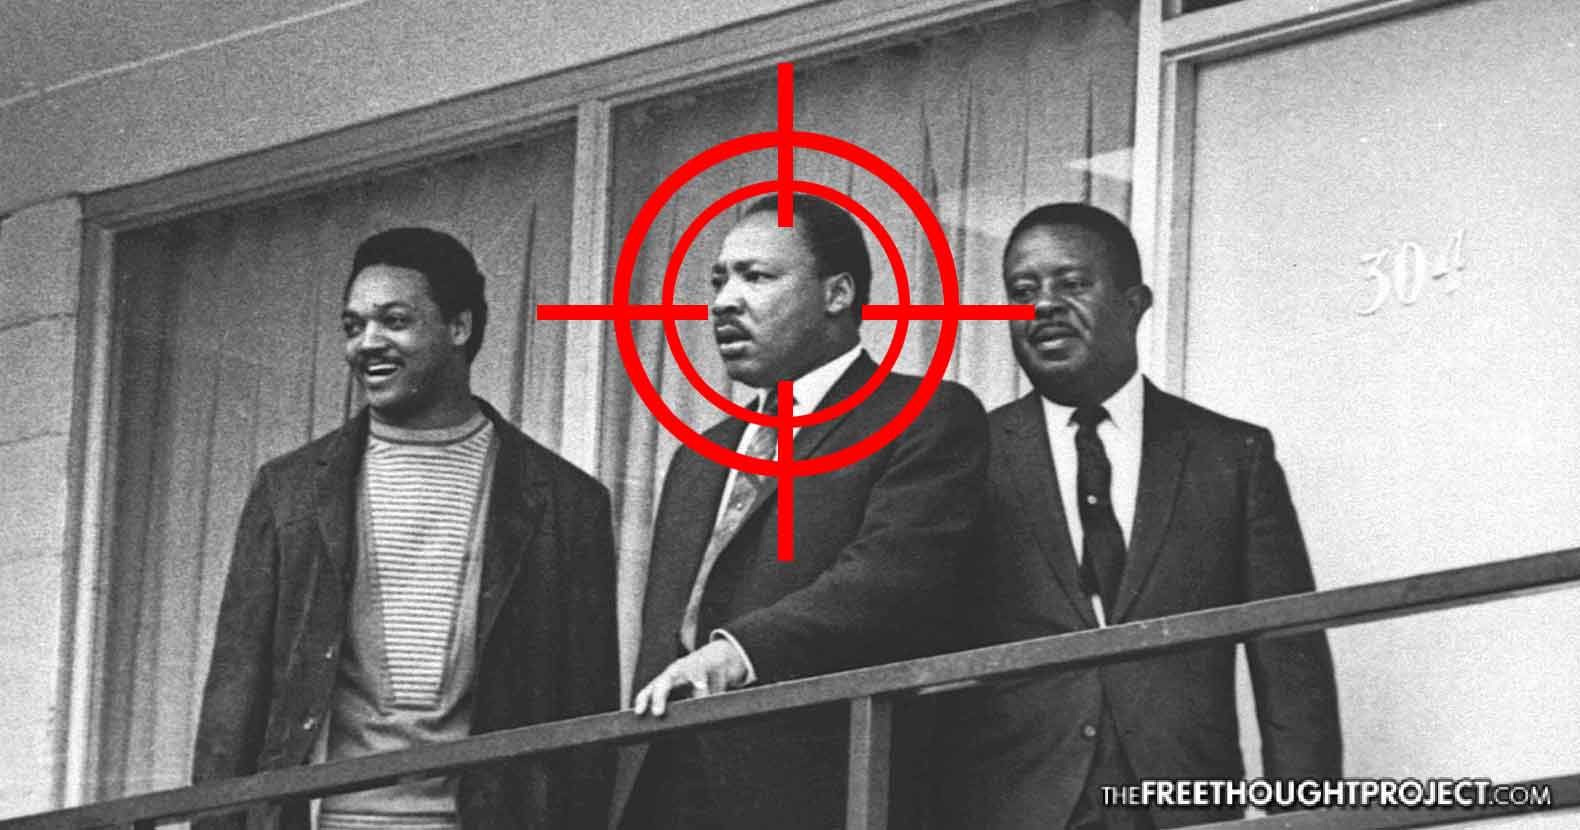 Martin Luther Kings Killer: It's Been 50 Years, And Most Don't Know The FBI & Police